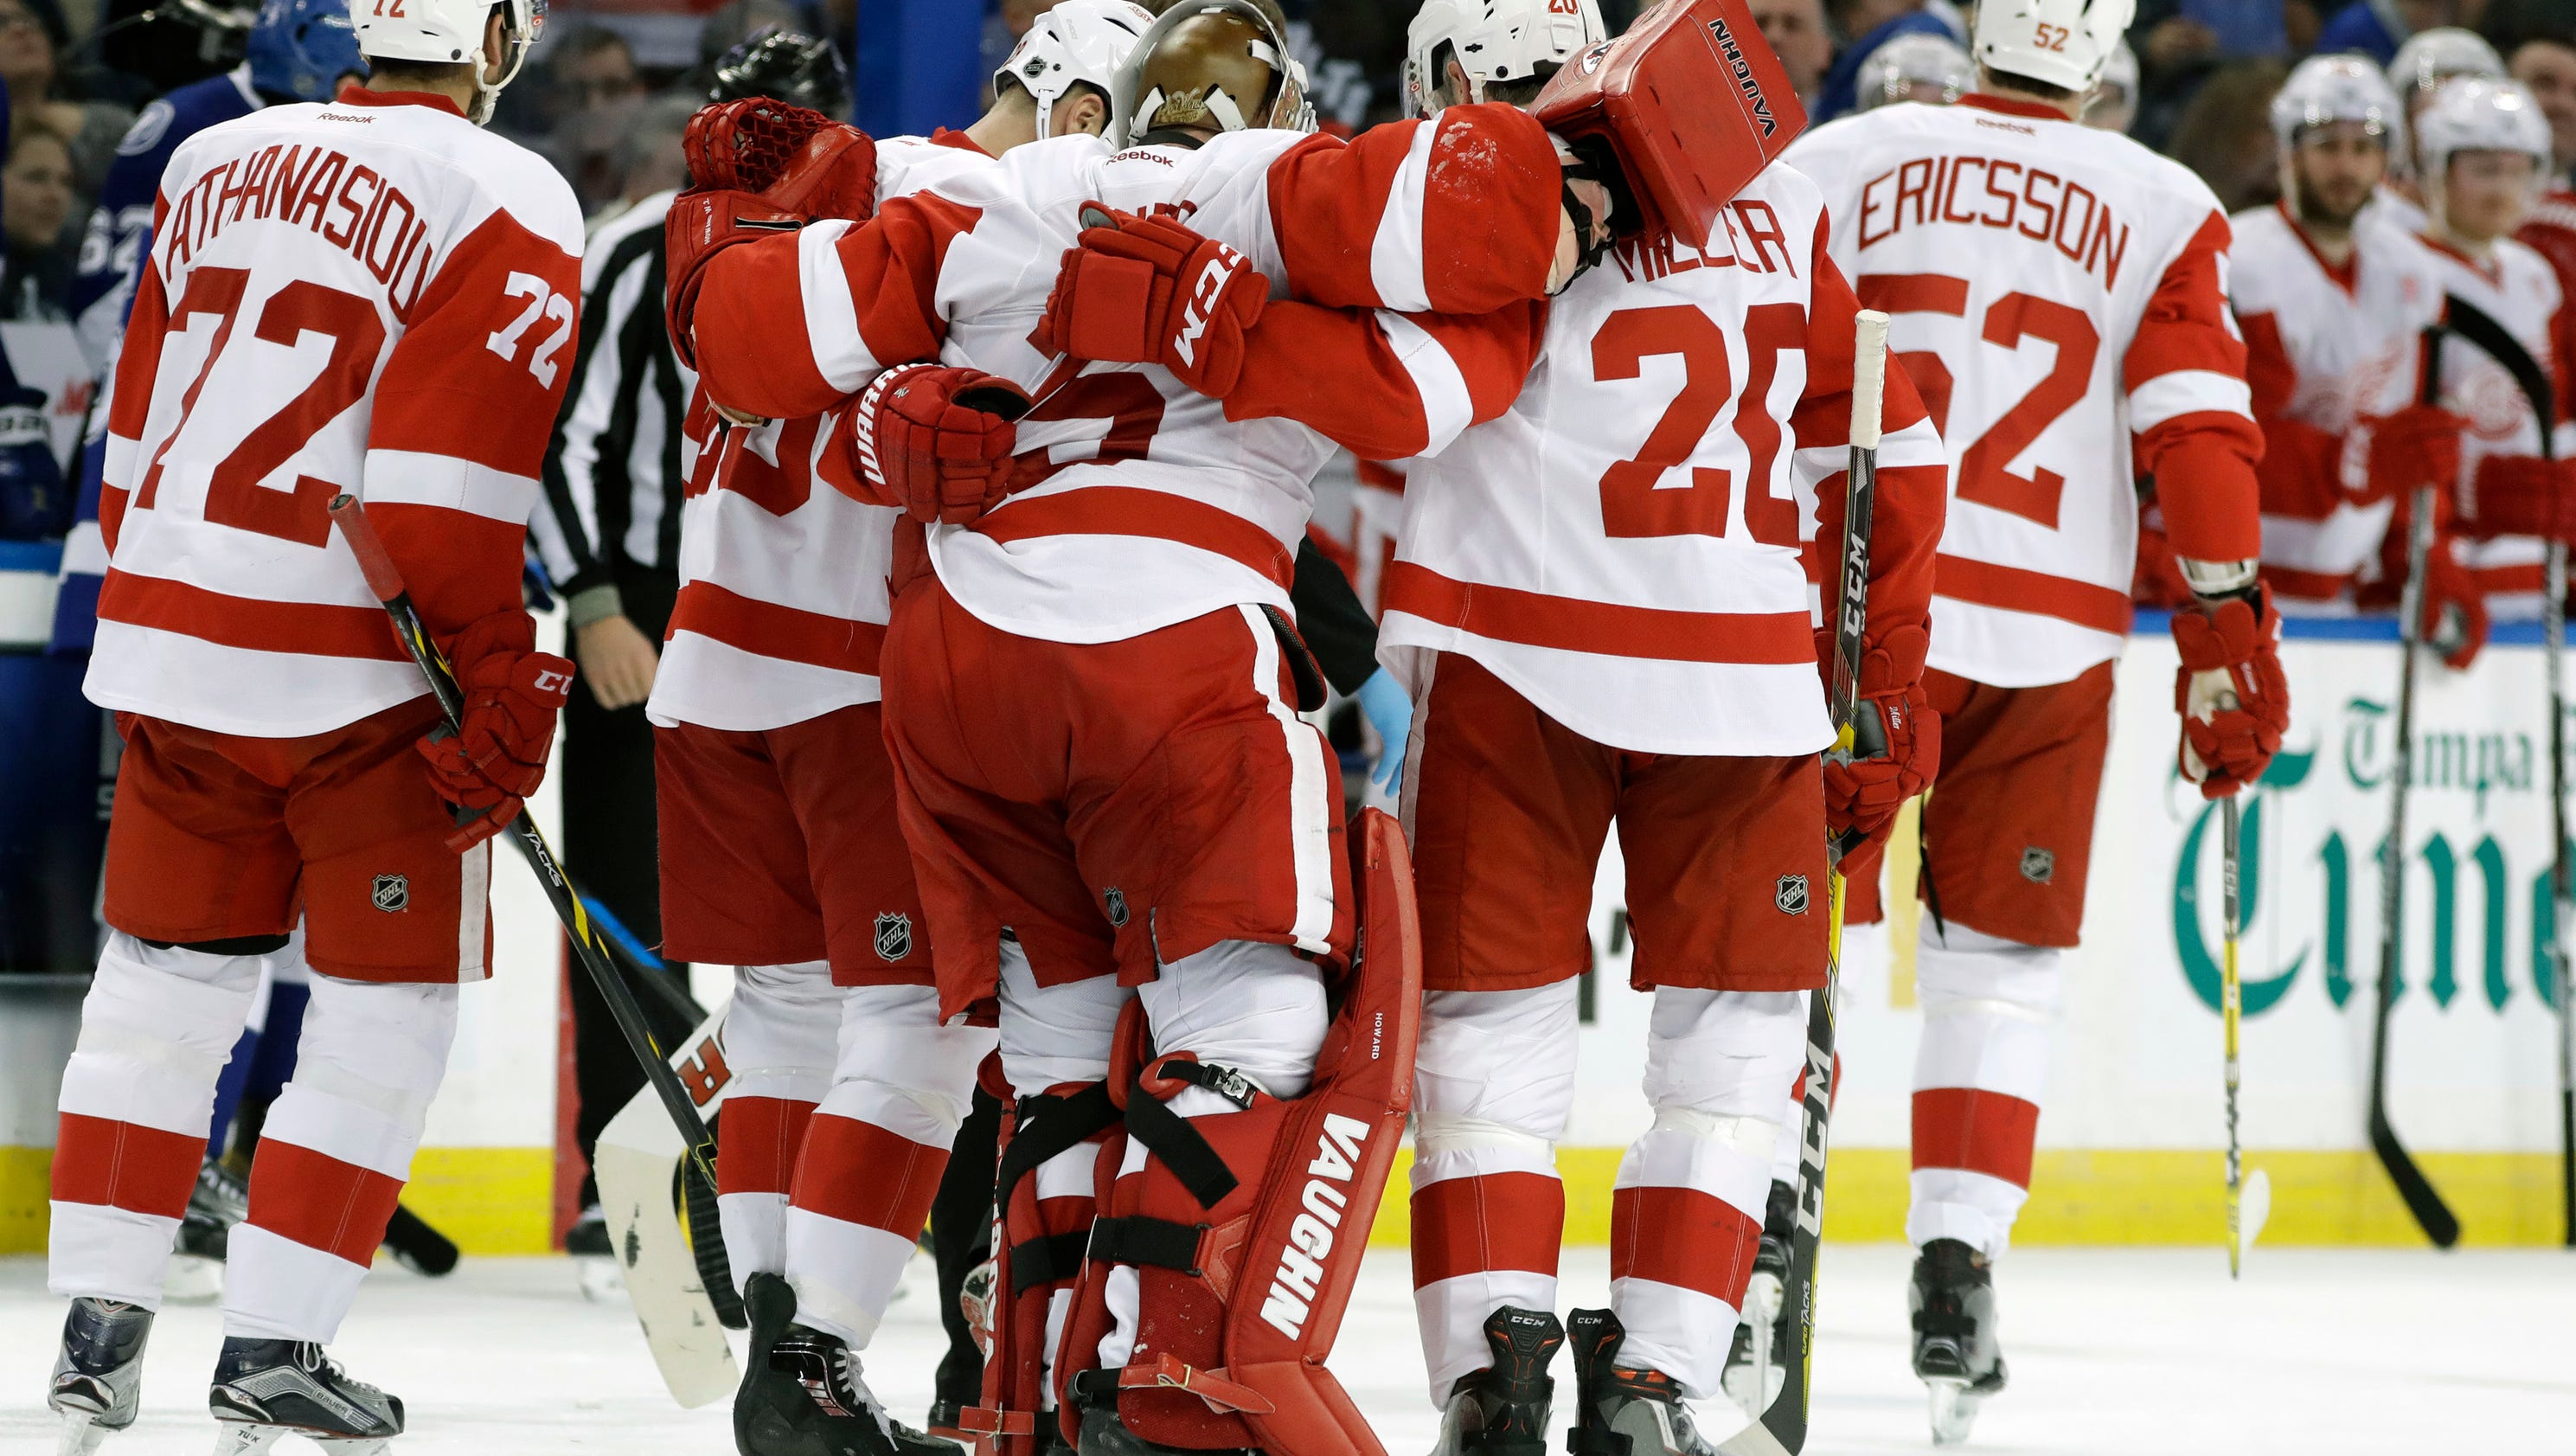 rssfeeds.detroitnews.com Live: Wings edge Panthers 4-3 in shootout  rssfeeds.detroitnews.com